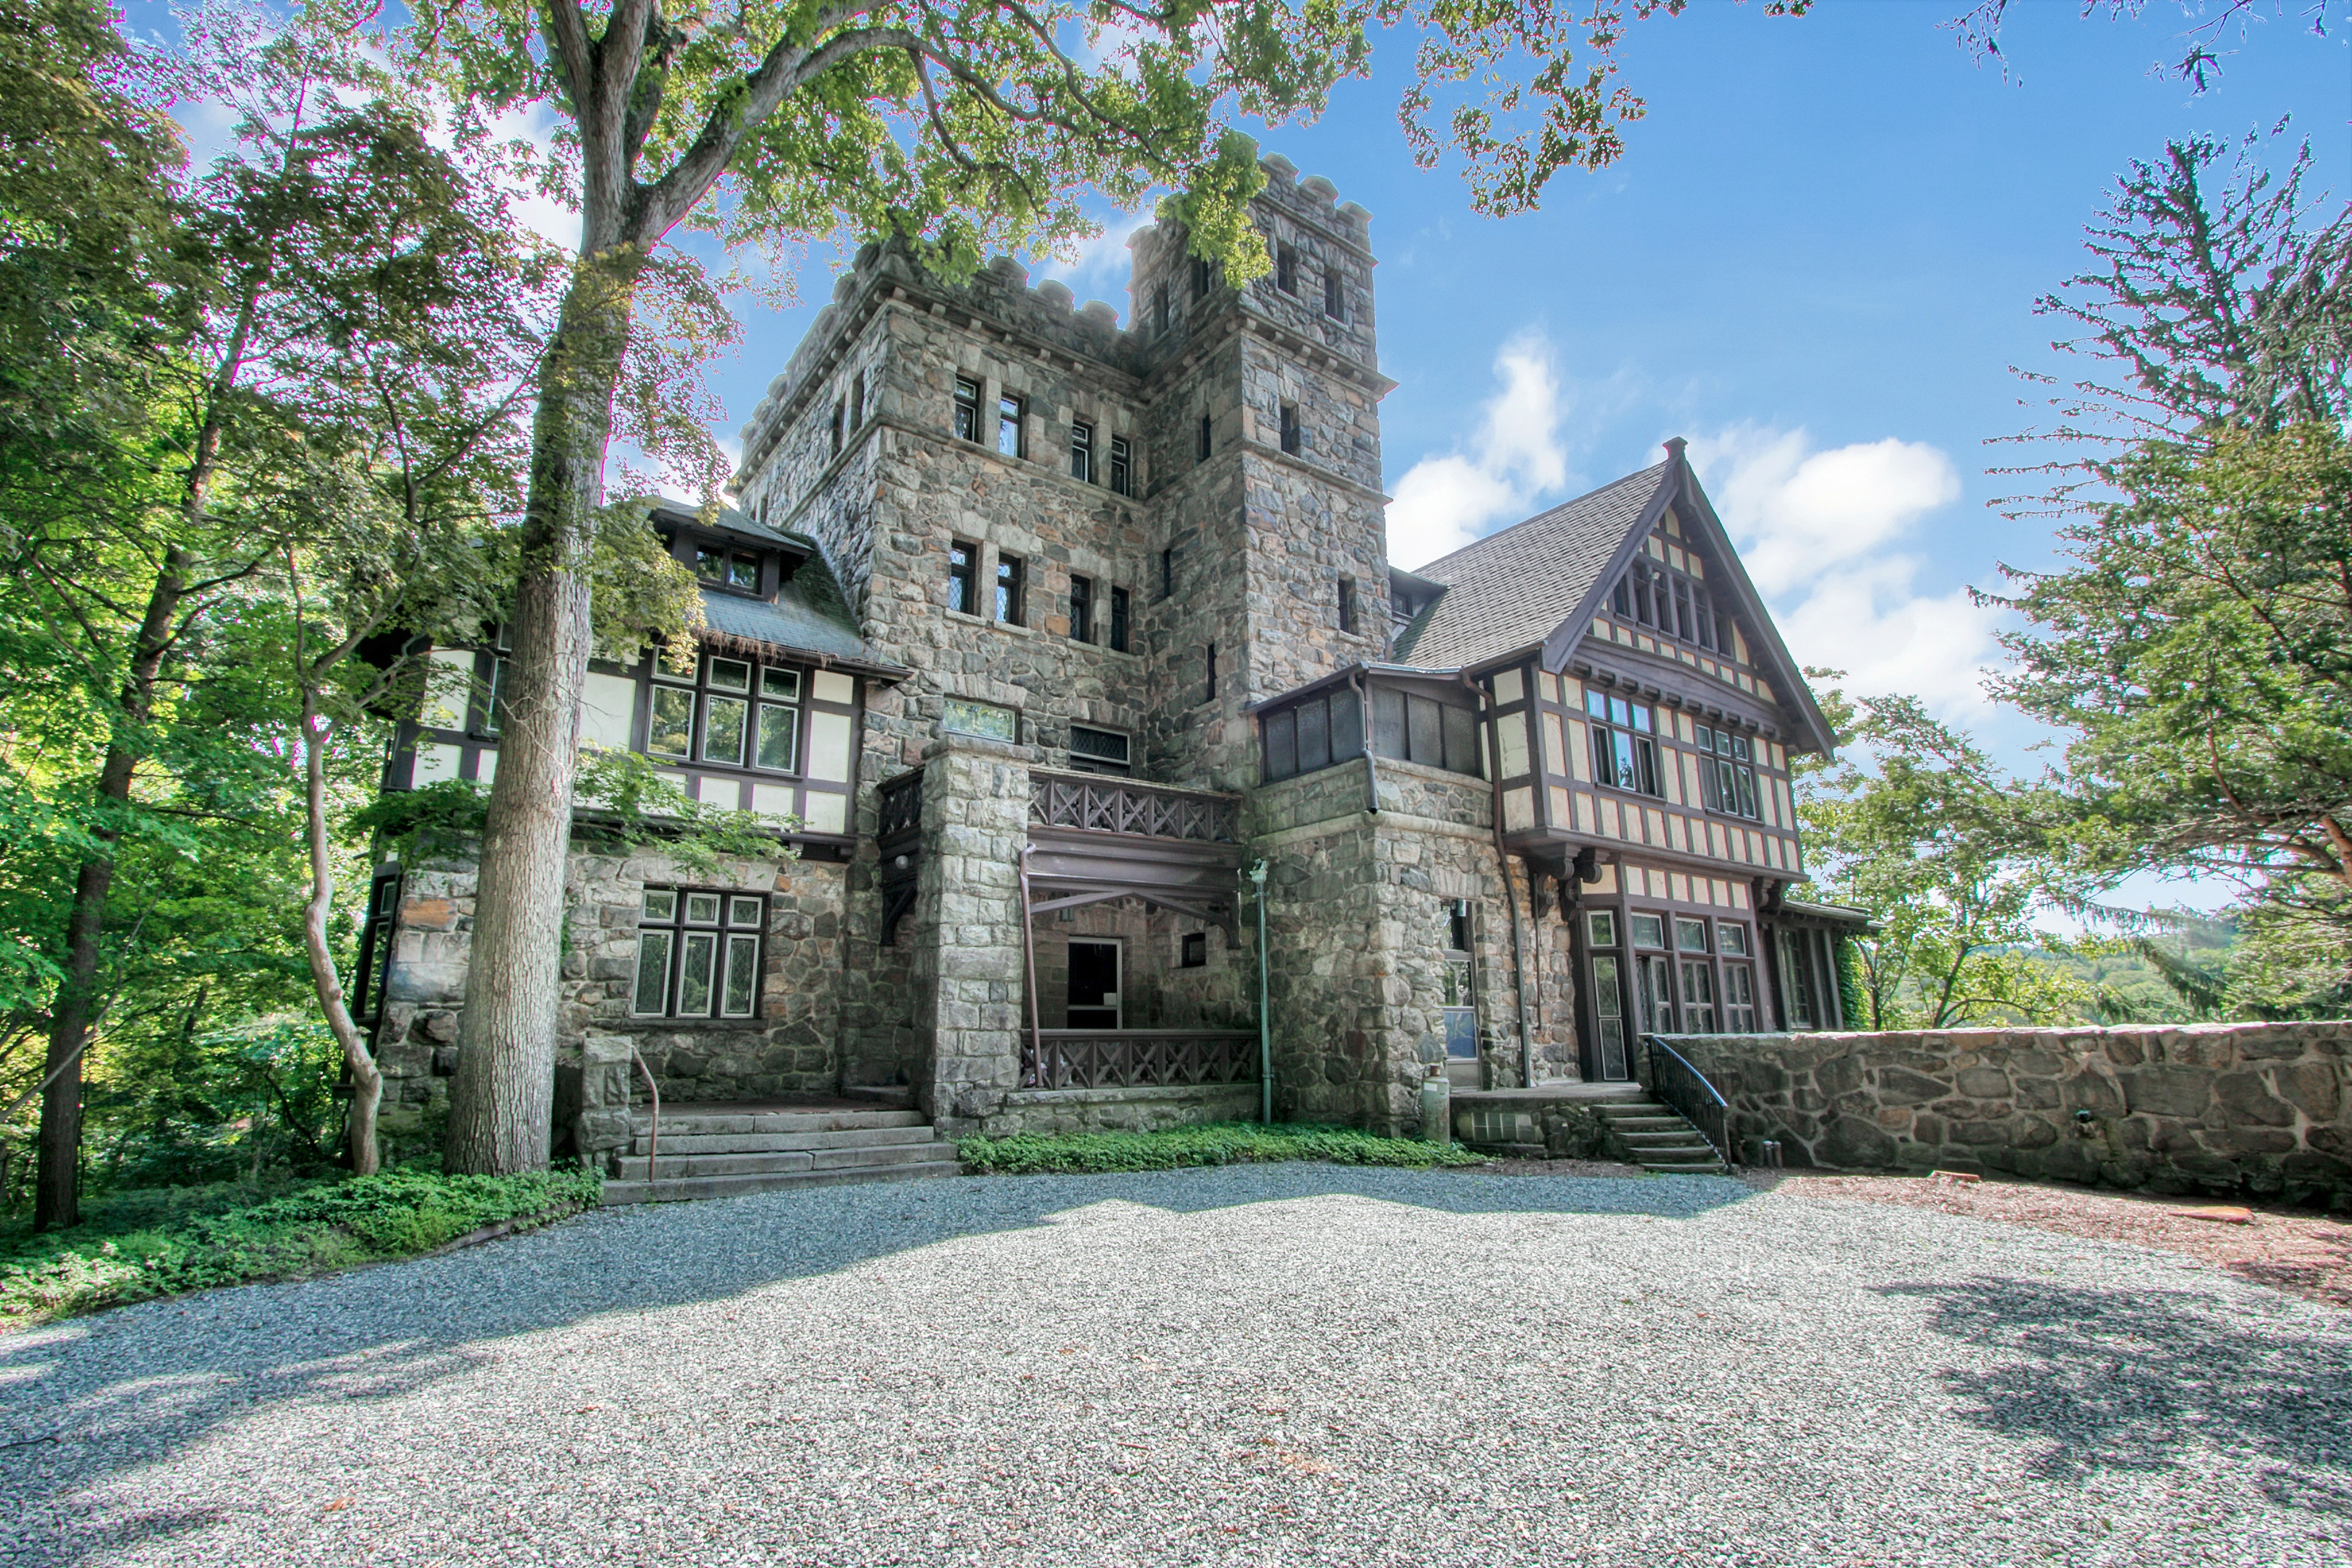 1902 castle one hour from NYC asks $975K